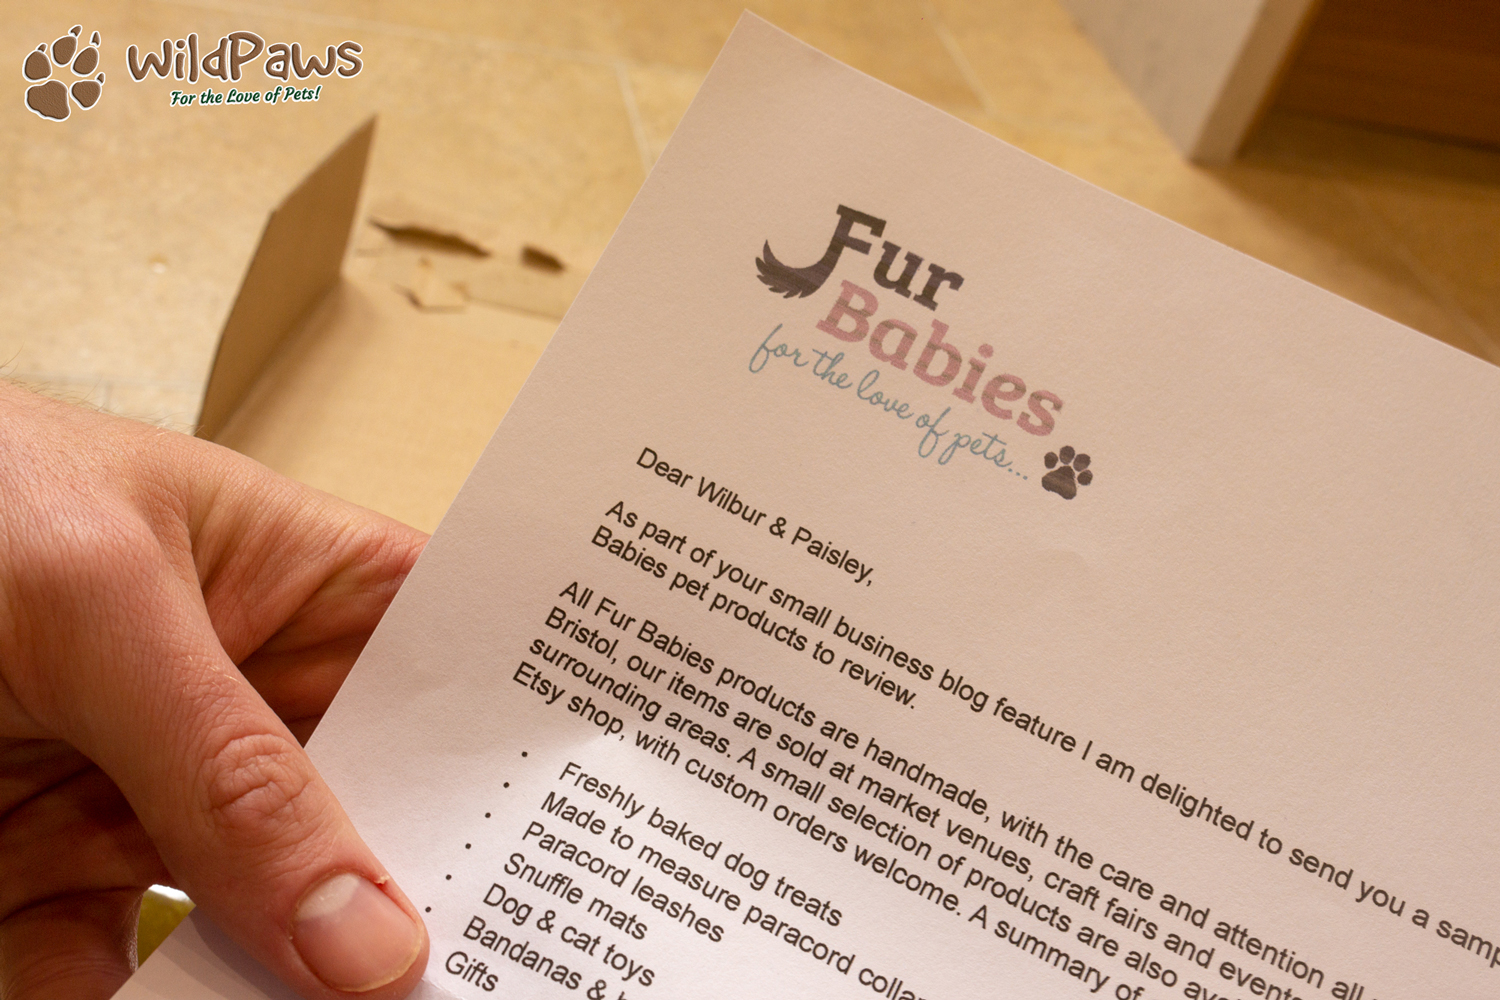 Wilbur & Paisley's Letter from Fur Babies